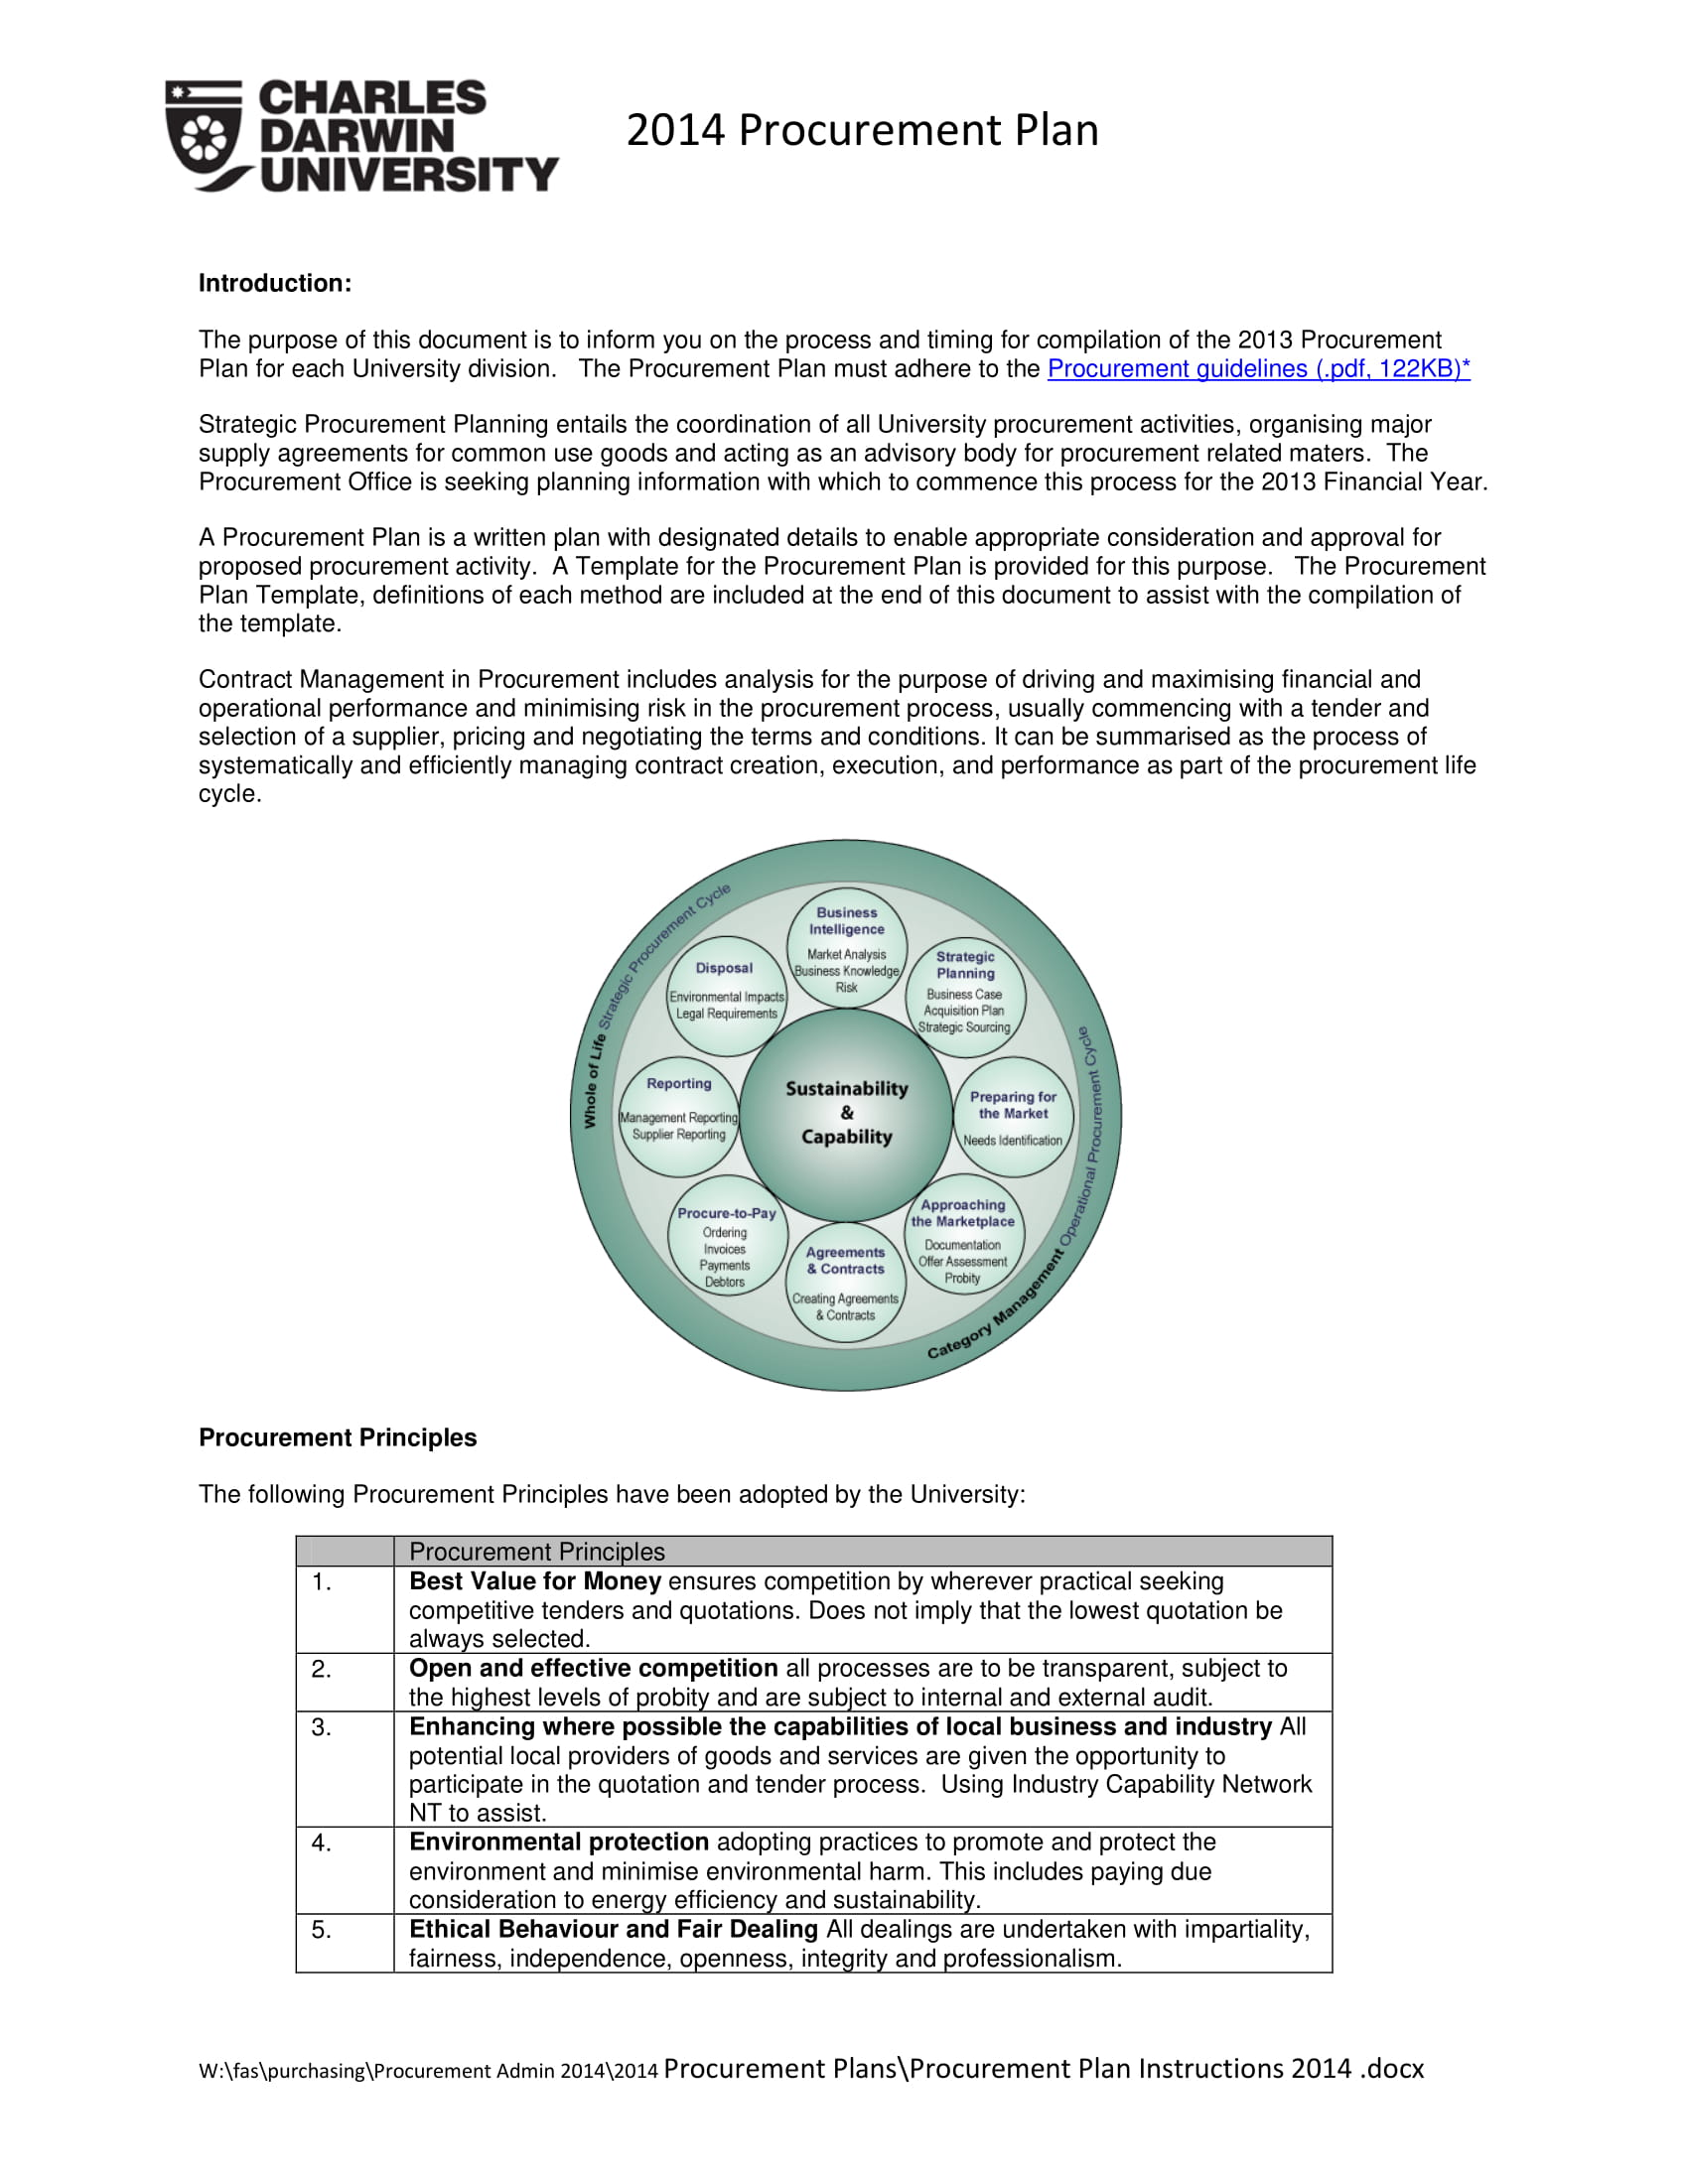 9 Procurement Strategy Plan Examples Pdf